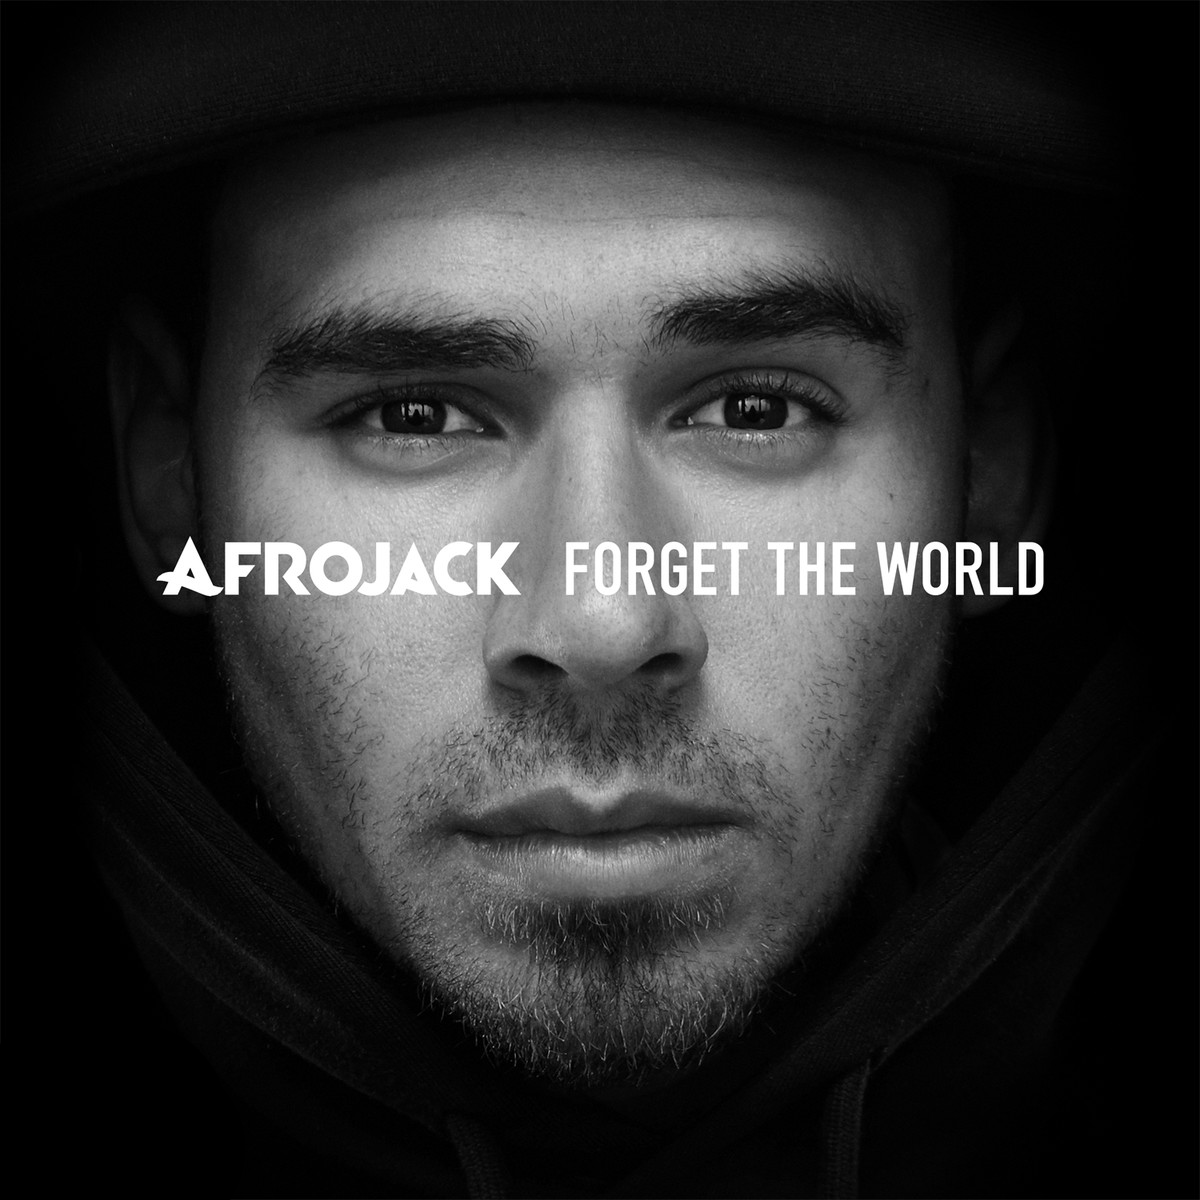 Afrojack-Forget-the-World-2014-1200x1200.png